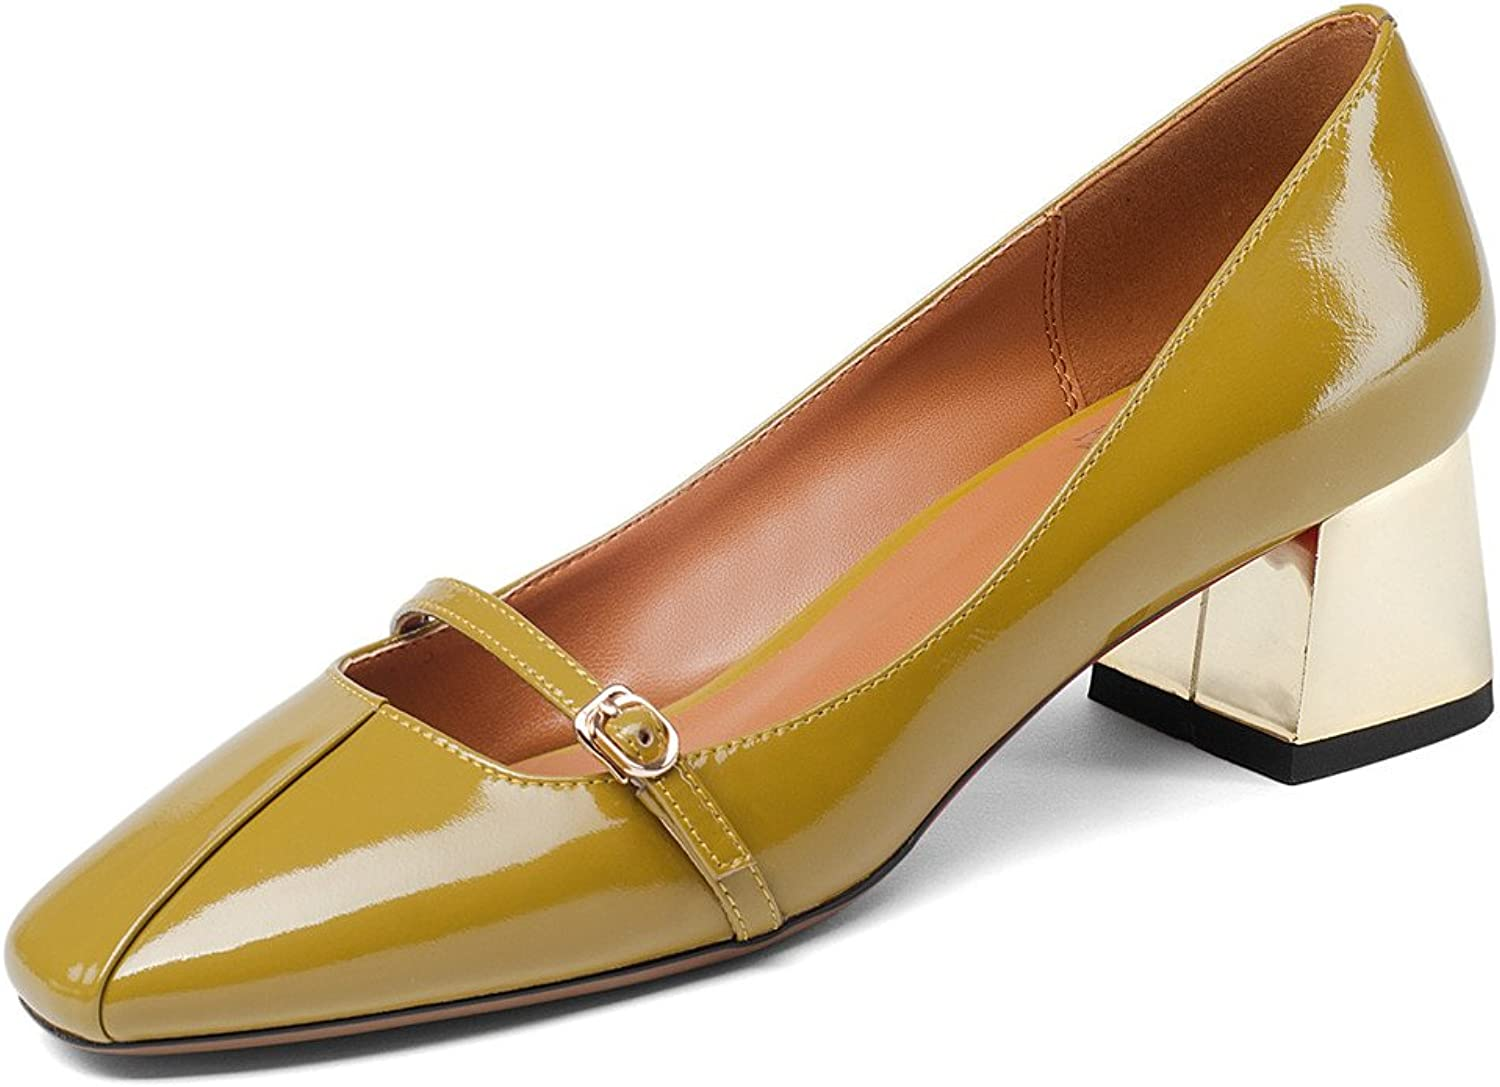 Nine Seven Patent Leather Women's Round Toe Chunky Heel Buckle Handmade Mary Jane Dress Pumps shoes